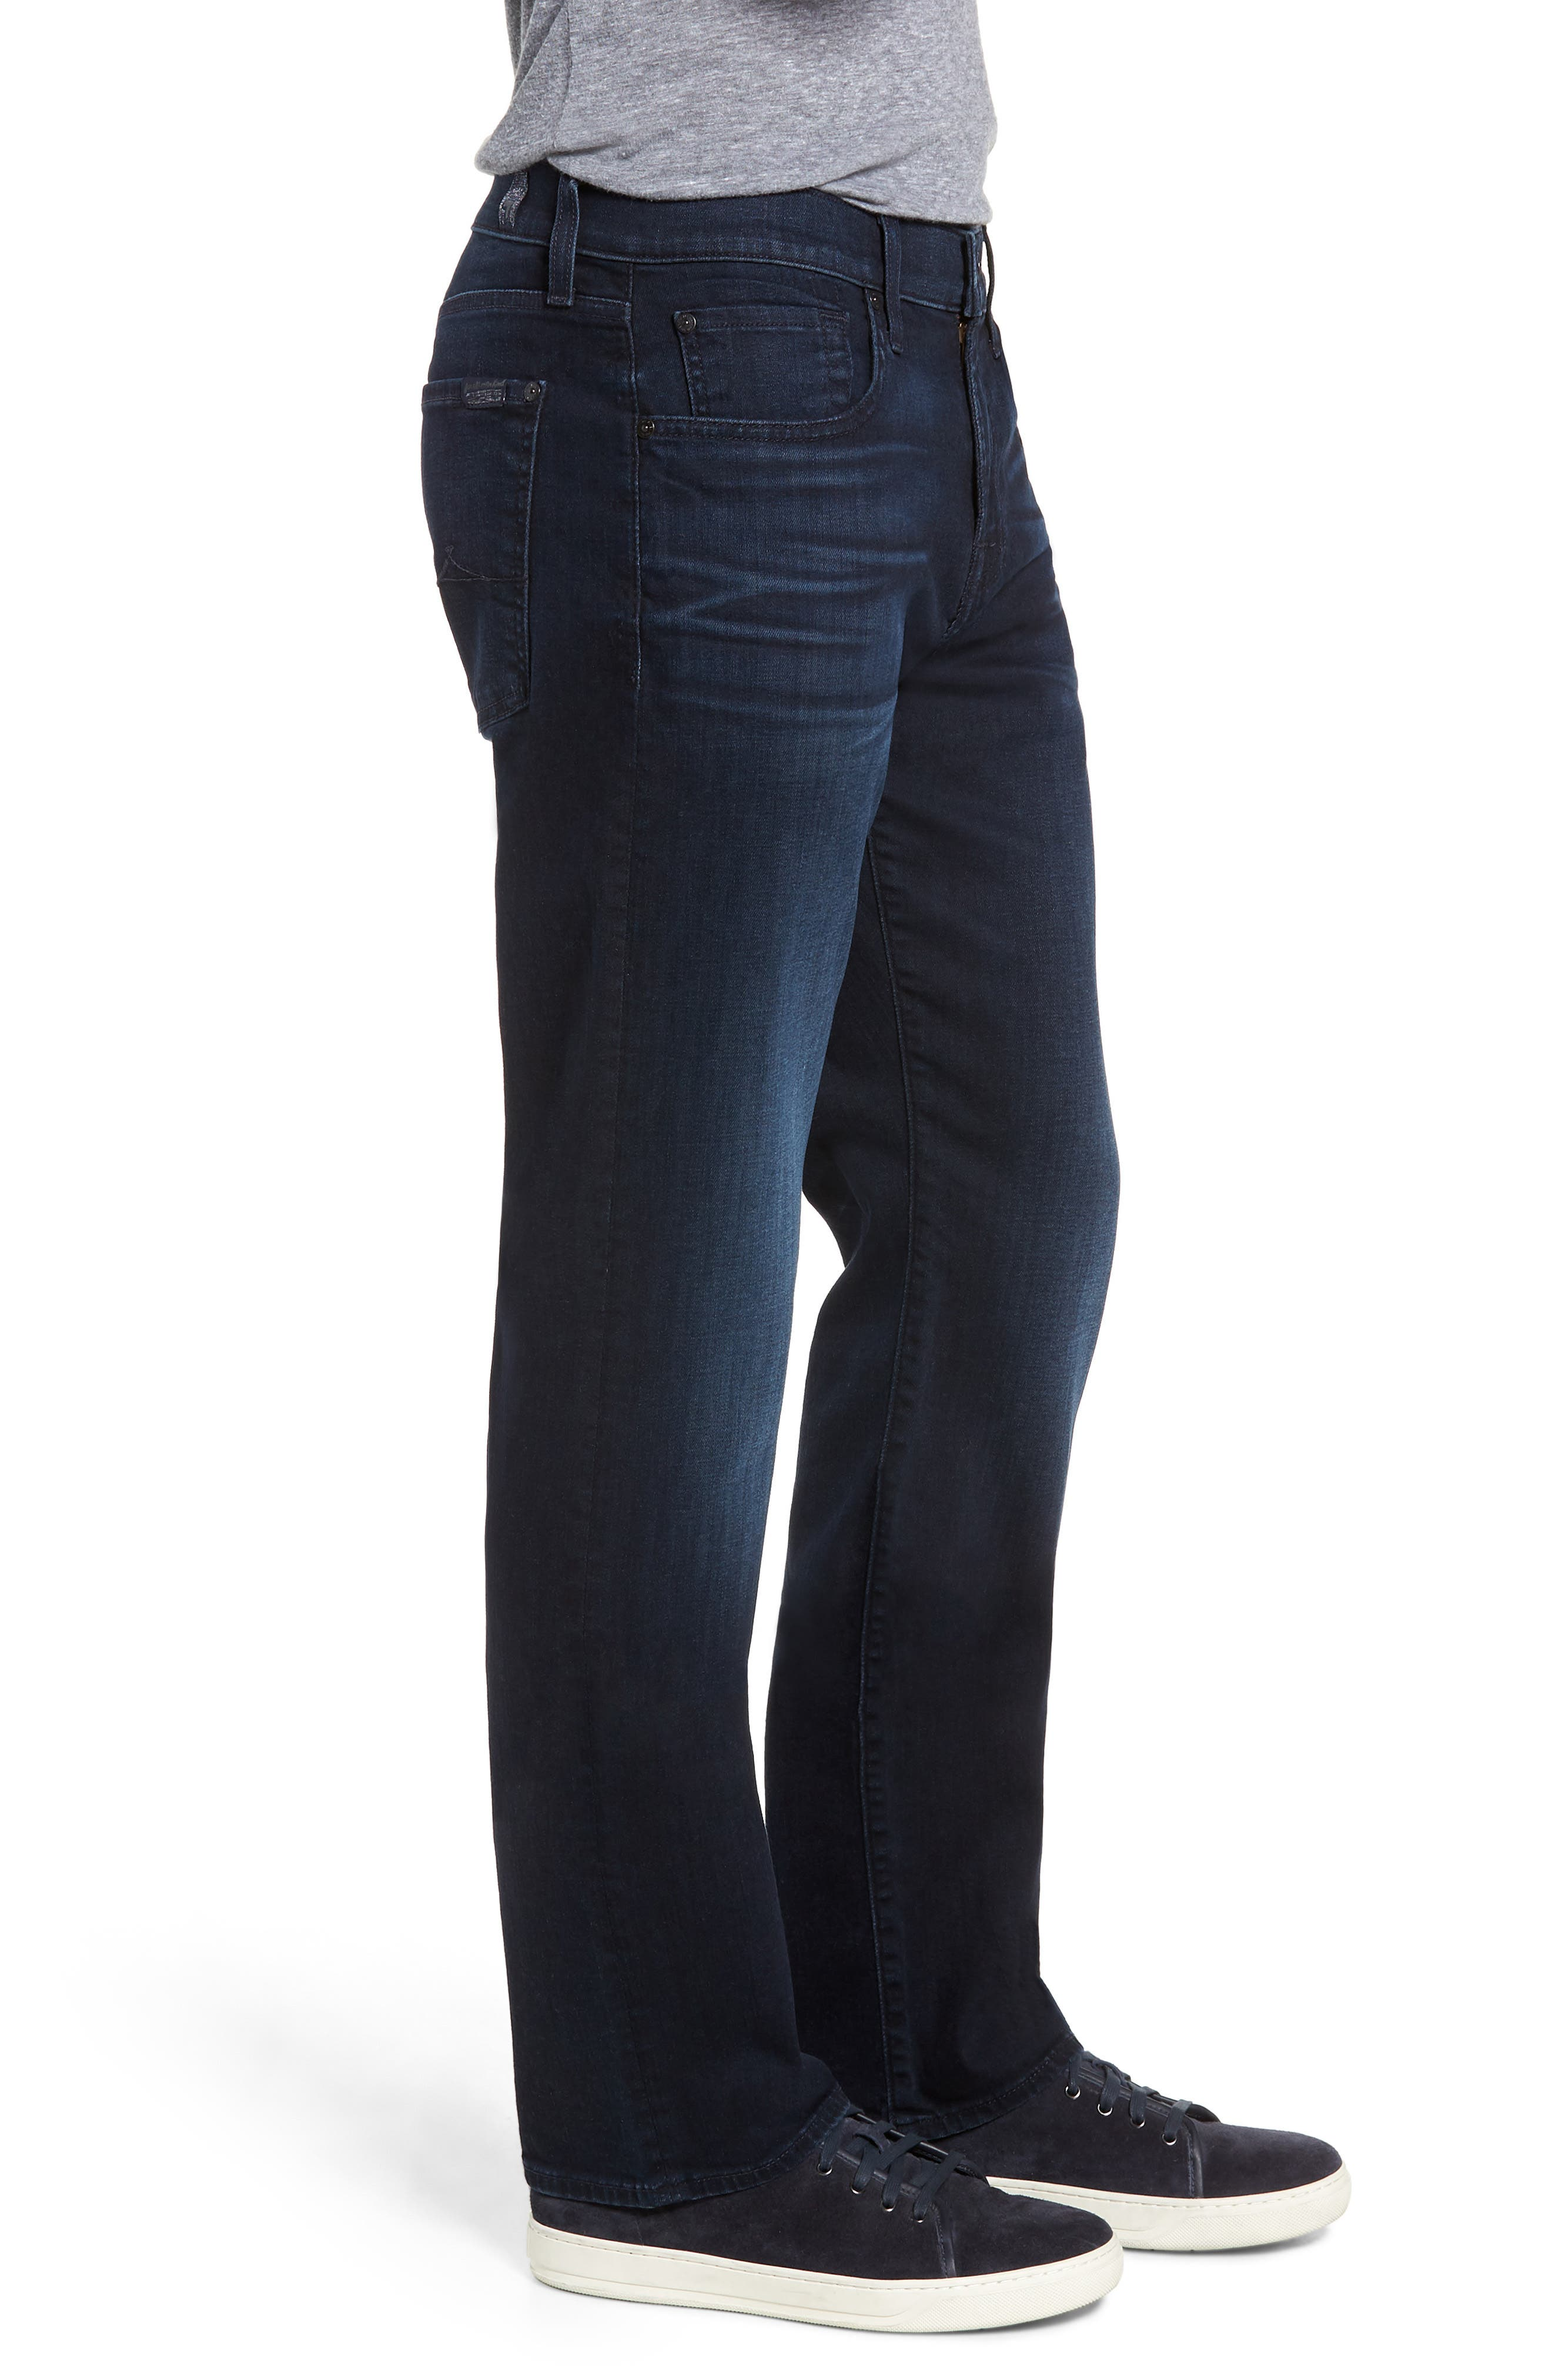 7 FOR ALL MANKIND<SUP>®</SUP>, Austyn Relaxed Fit Jeans, Alternate thumbnail 4, color, ASOTIN-ASOT